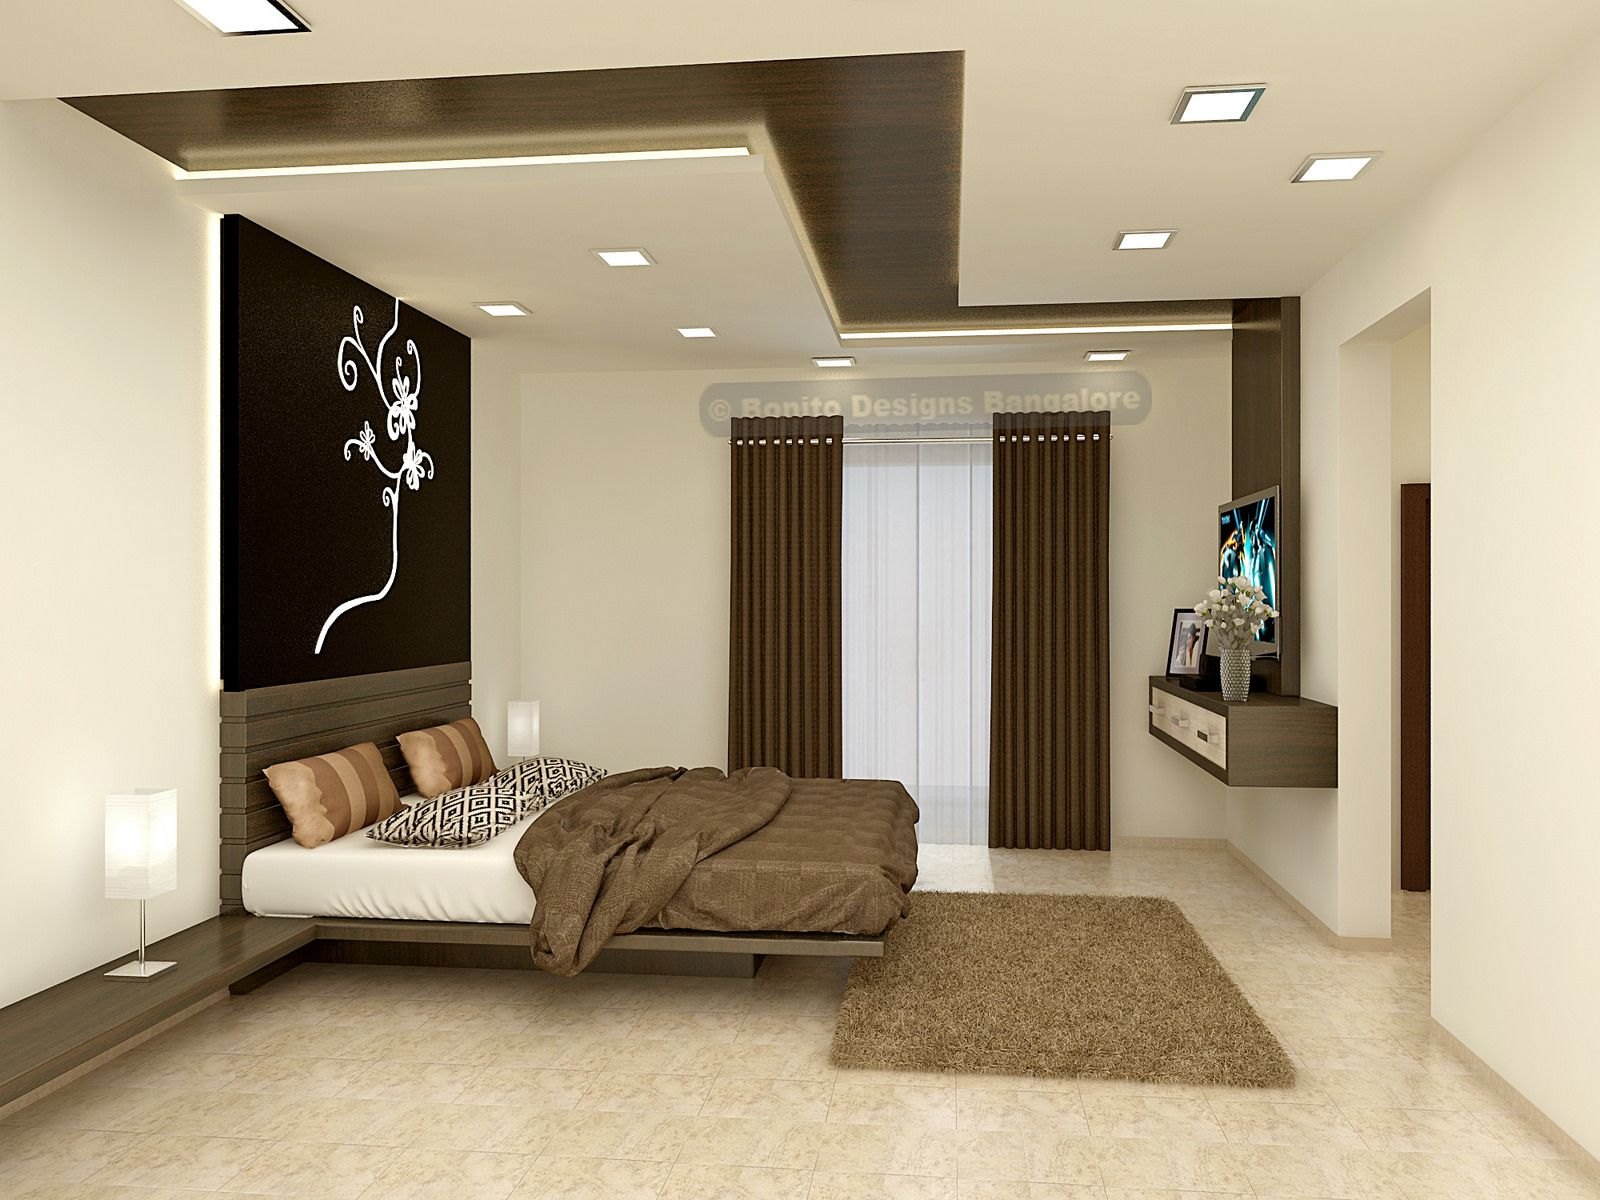 sandepmbr 1 ceilings bedroom false ceiling design false ceiling rh pinterest com ceiling paint ideas for living room wood ceiling ideas for living room